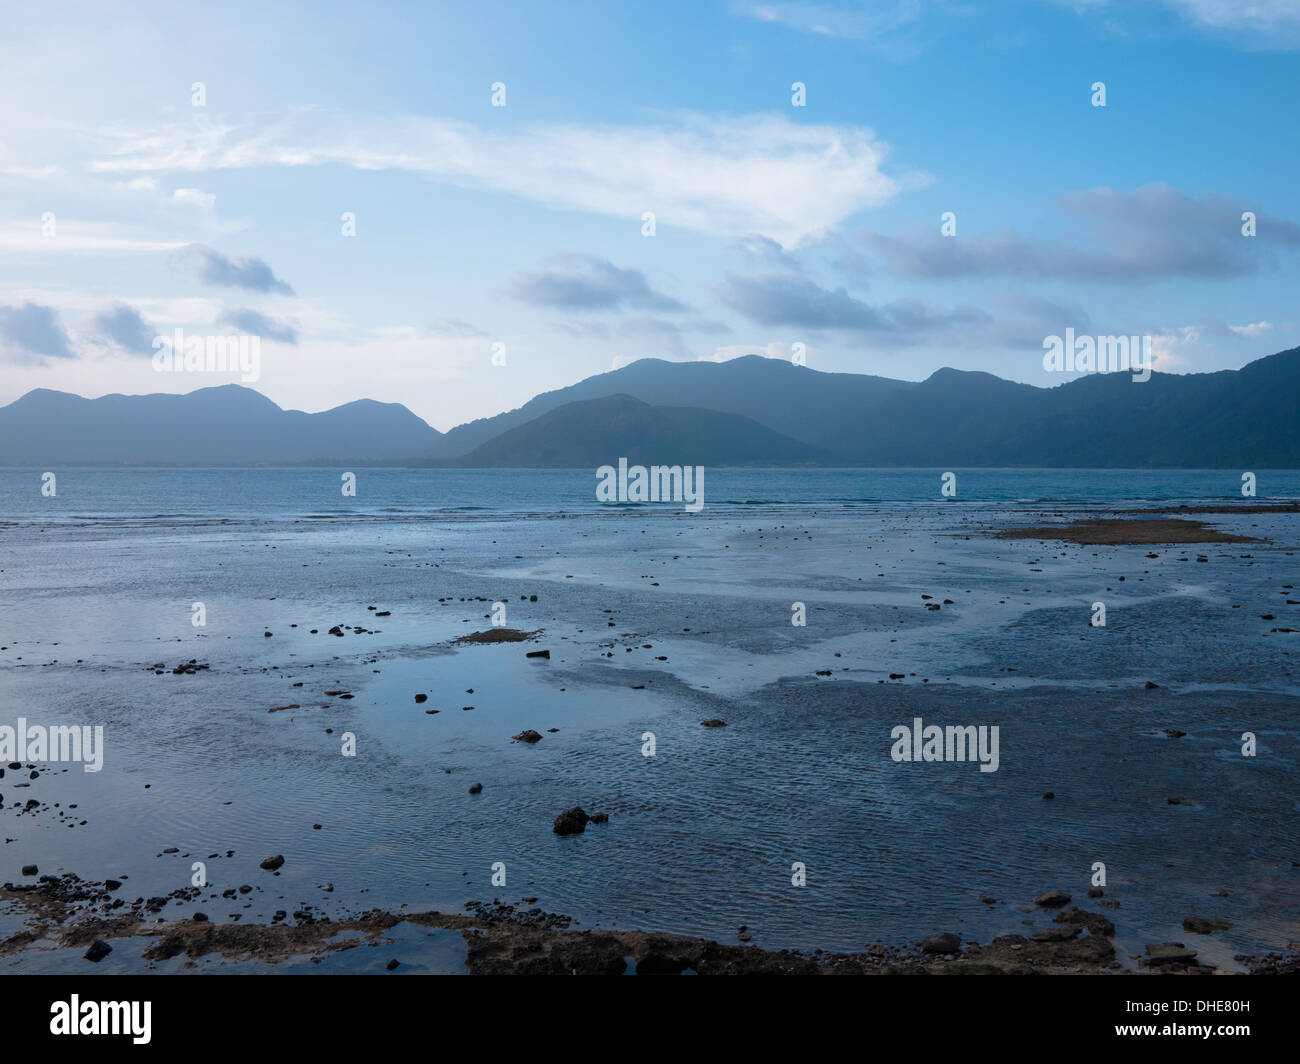 A view of Con Son Island and the South China Sea as seen from Bay Canh Island, one of the Con Dao Islands, Vietnam. - Stock Image